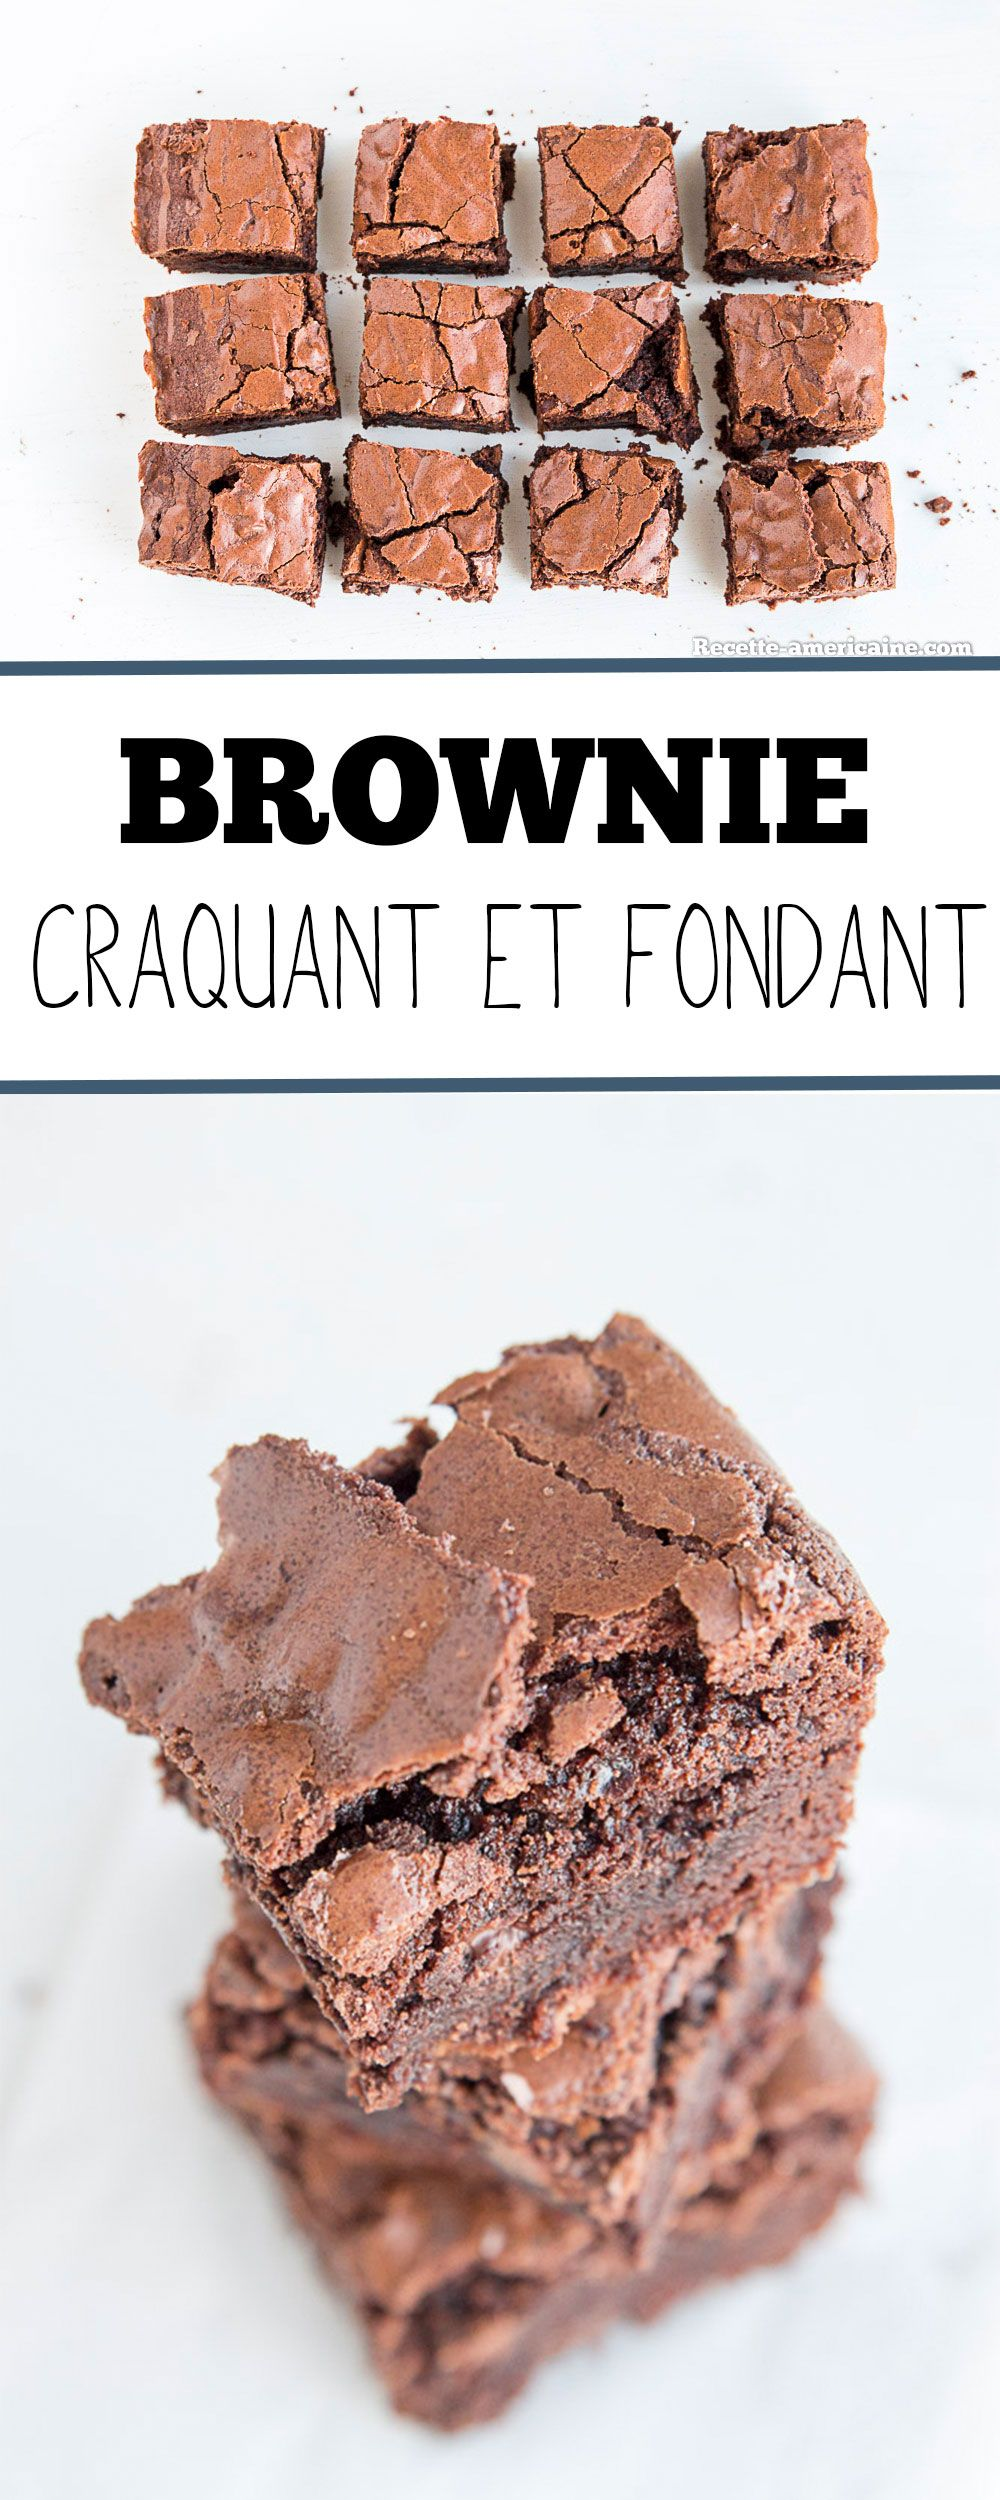 Photo of Brownie fondant et croustillant à l'américaine | Recette américaine